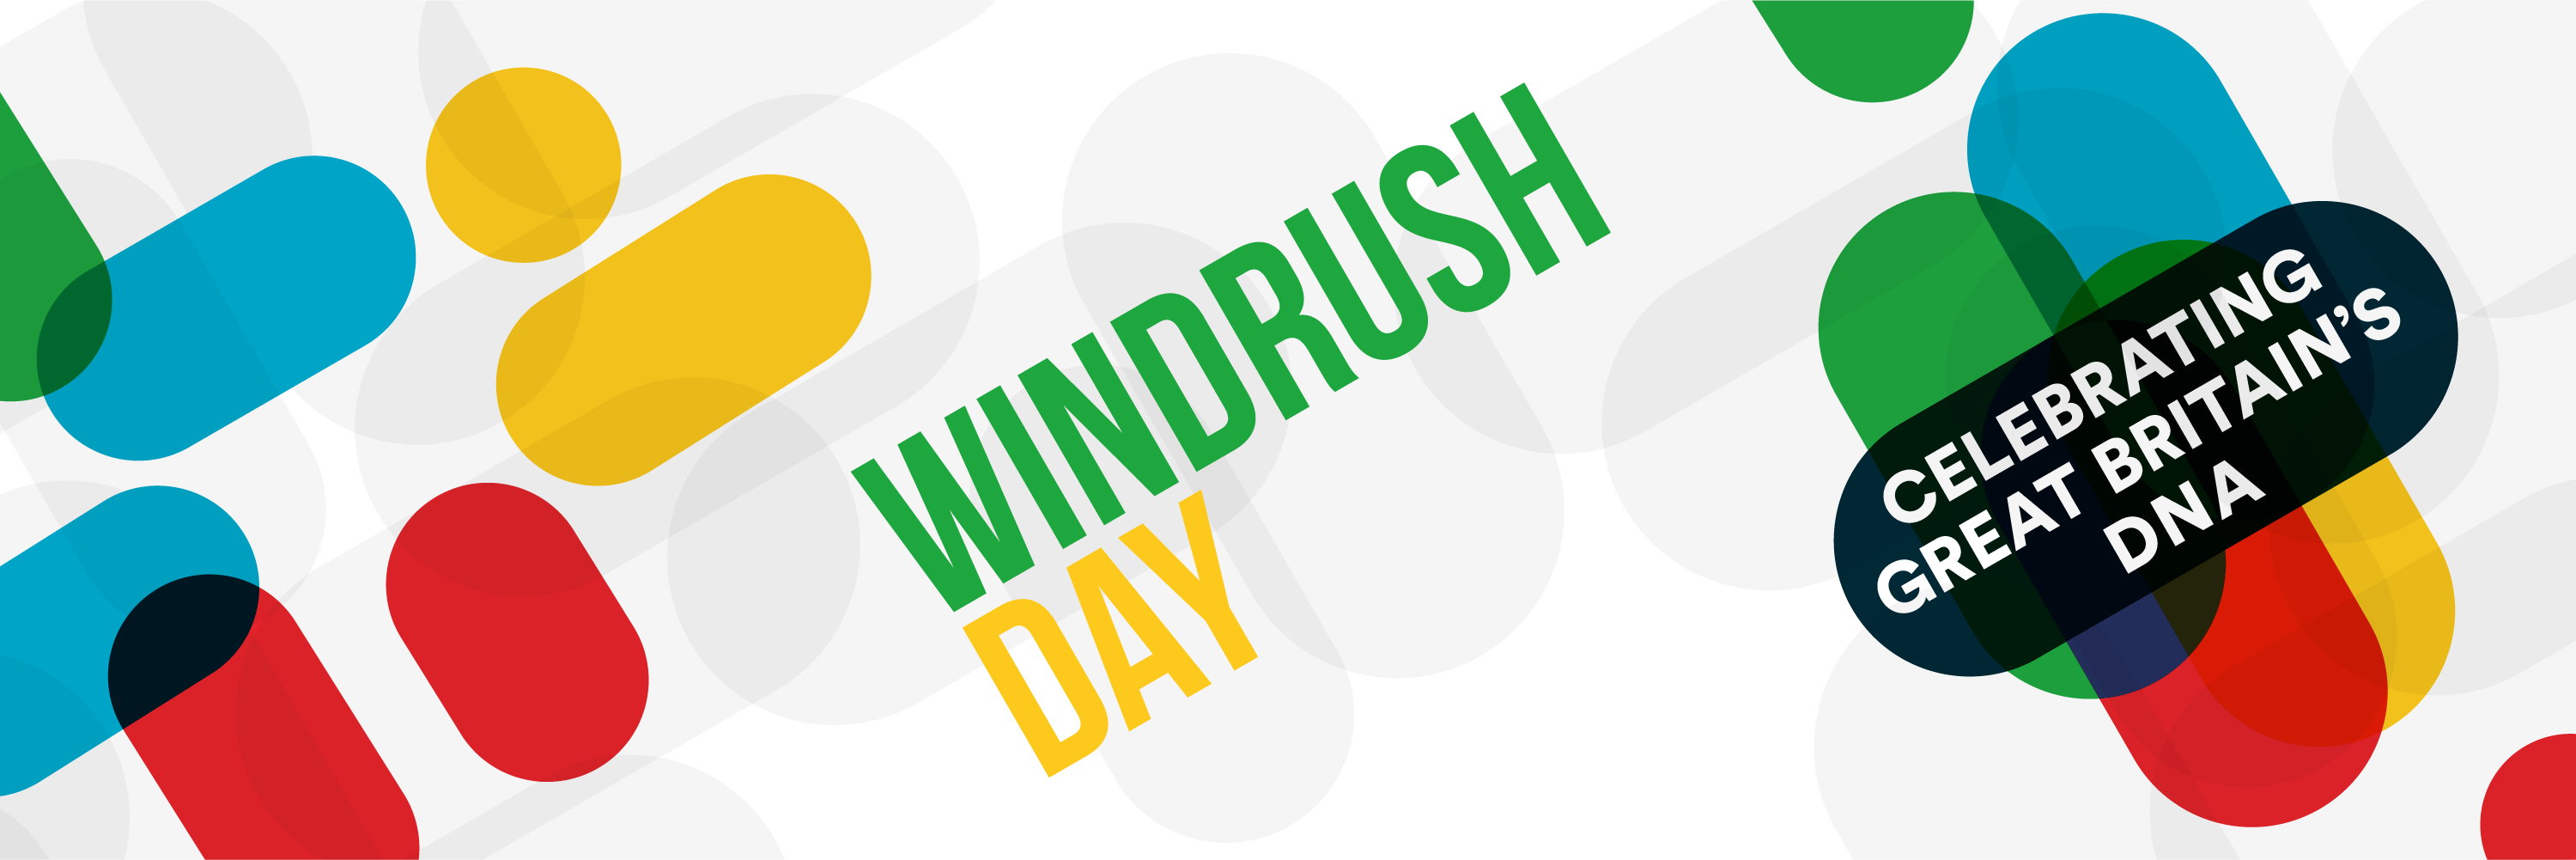 Windrush Day 2020 logo